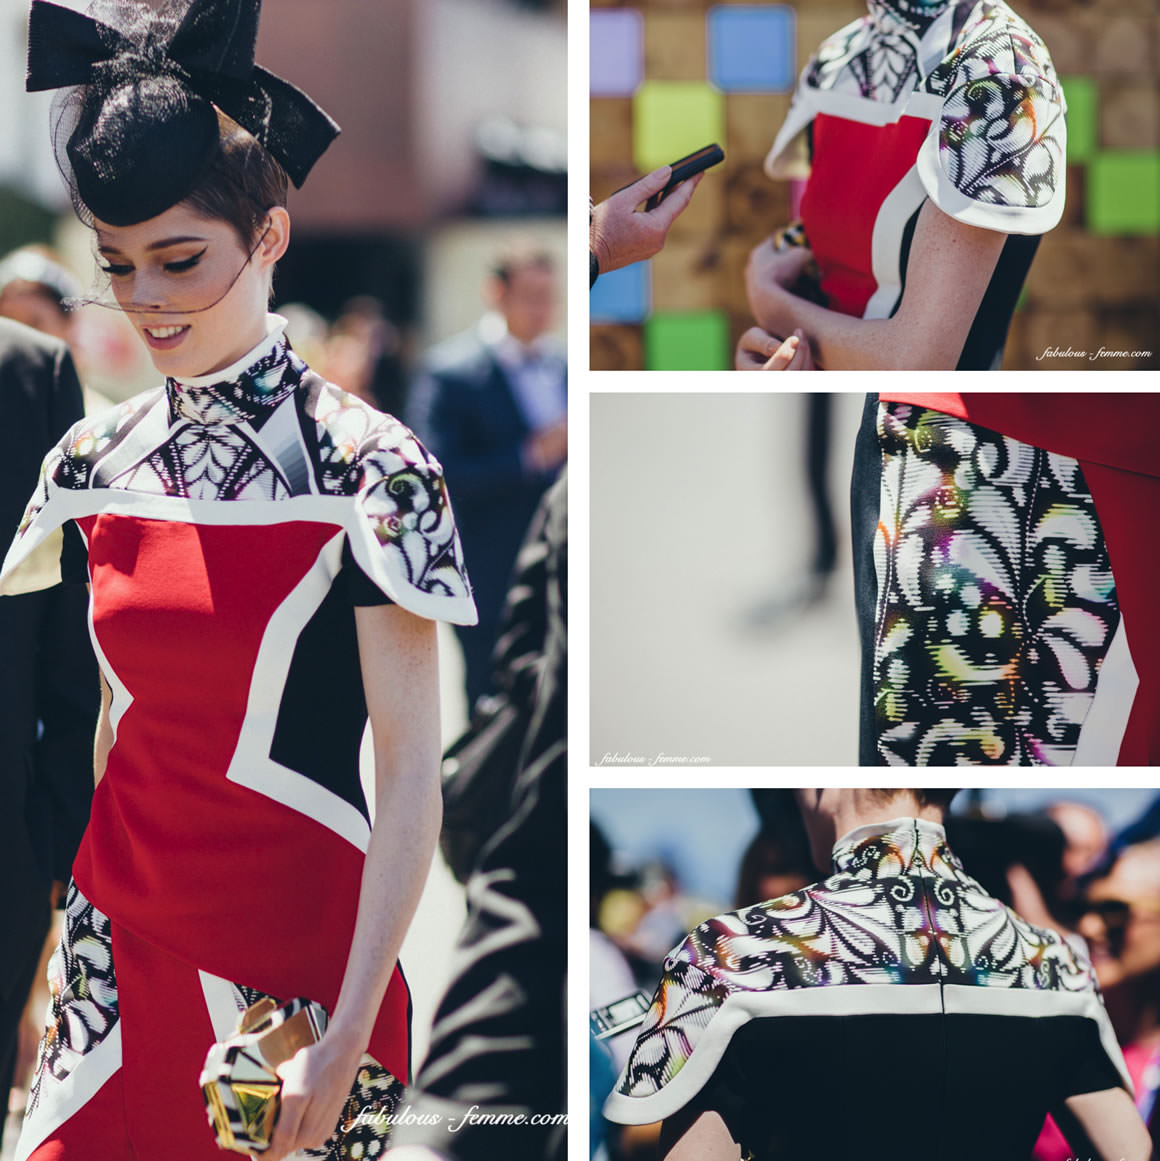 celebrities at the melbourne cup 2013 - supermodel coco rocha